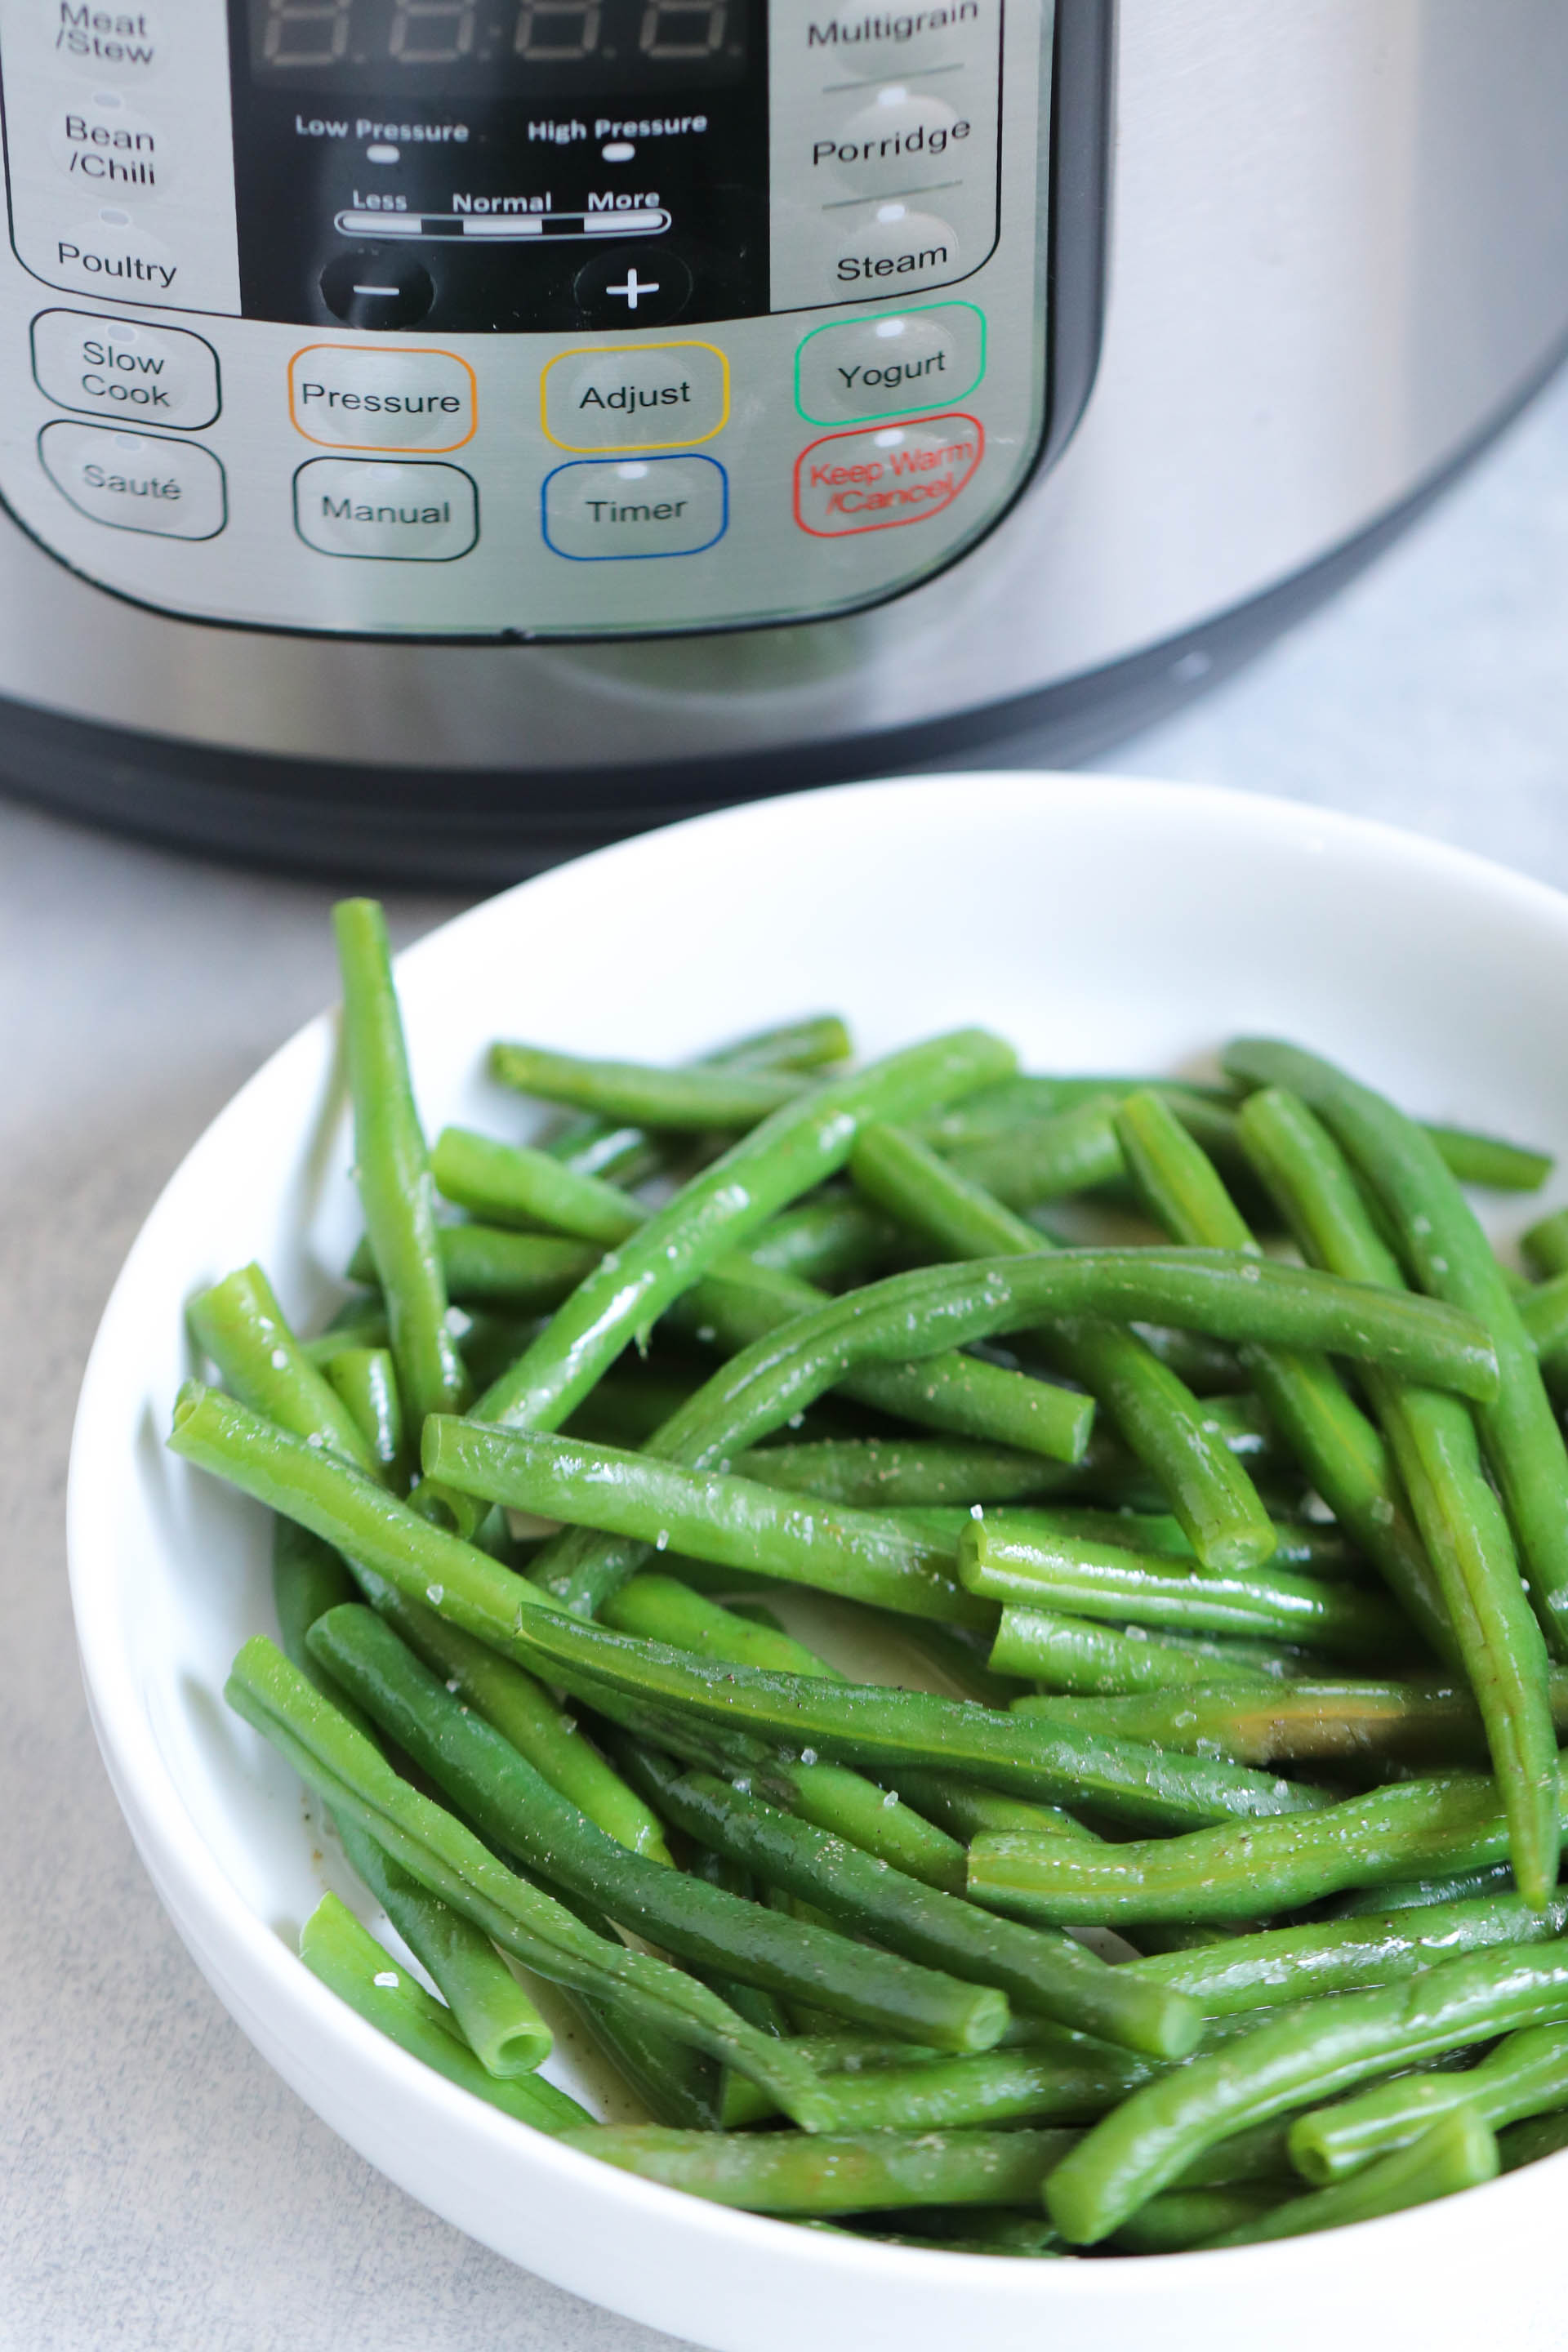 Cooked green beans in a bowl next to an Instant Pot